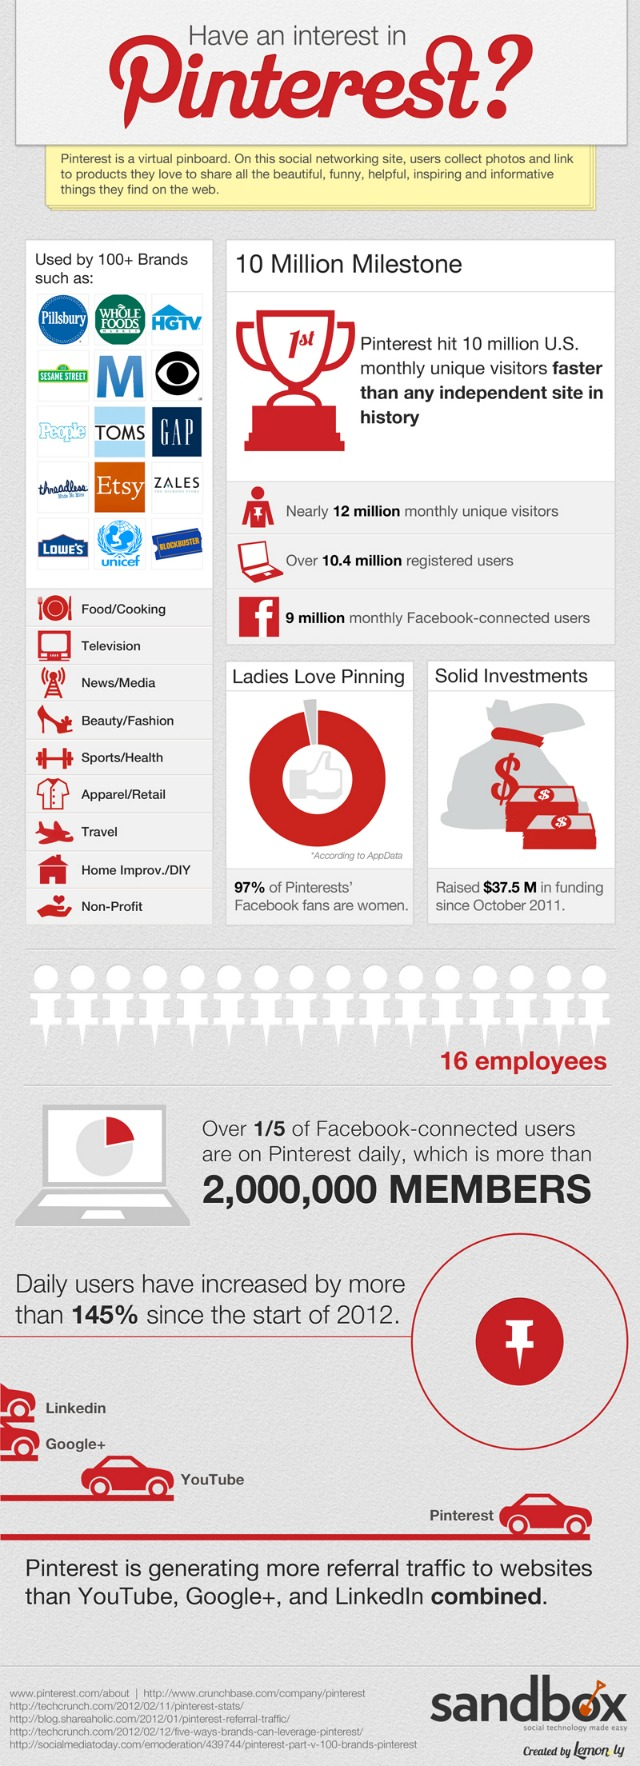 Pinterest: Everything You Wanted to Know About 2012′s Hottest Startup